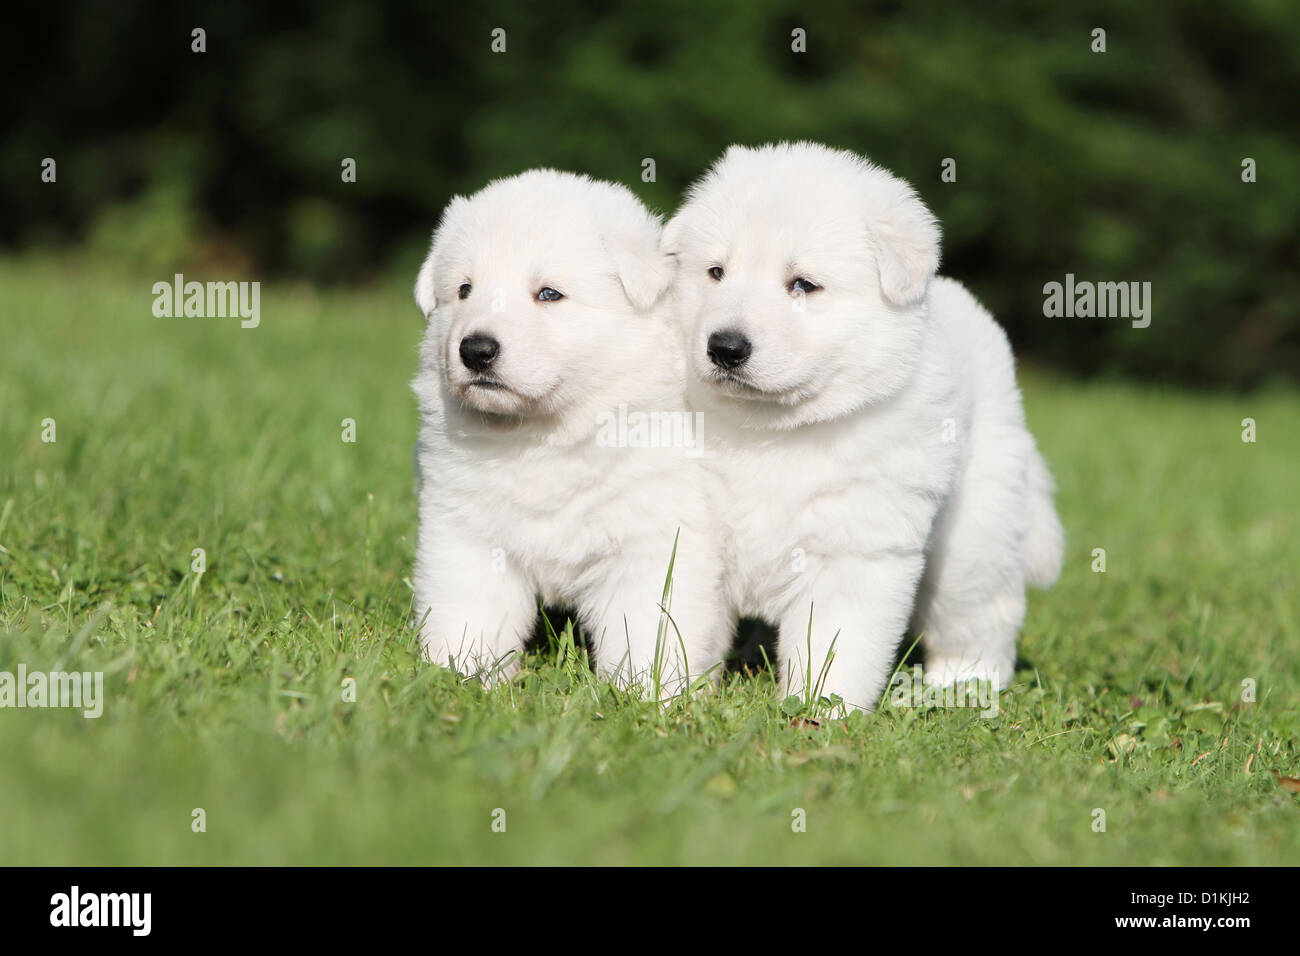 White Swiss Shepherd Dog Berger Blanc Suisse Two Puppies Together